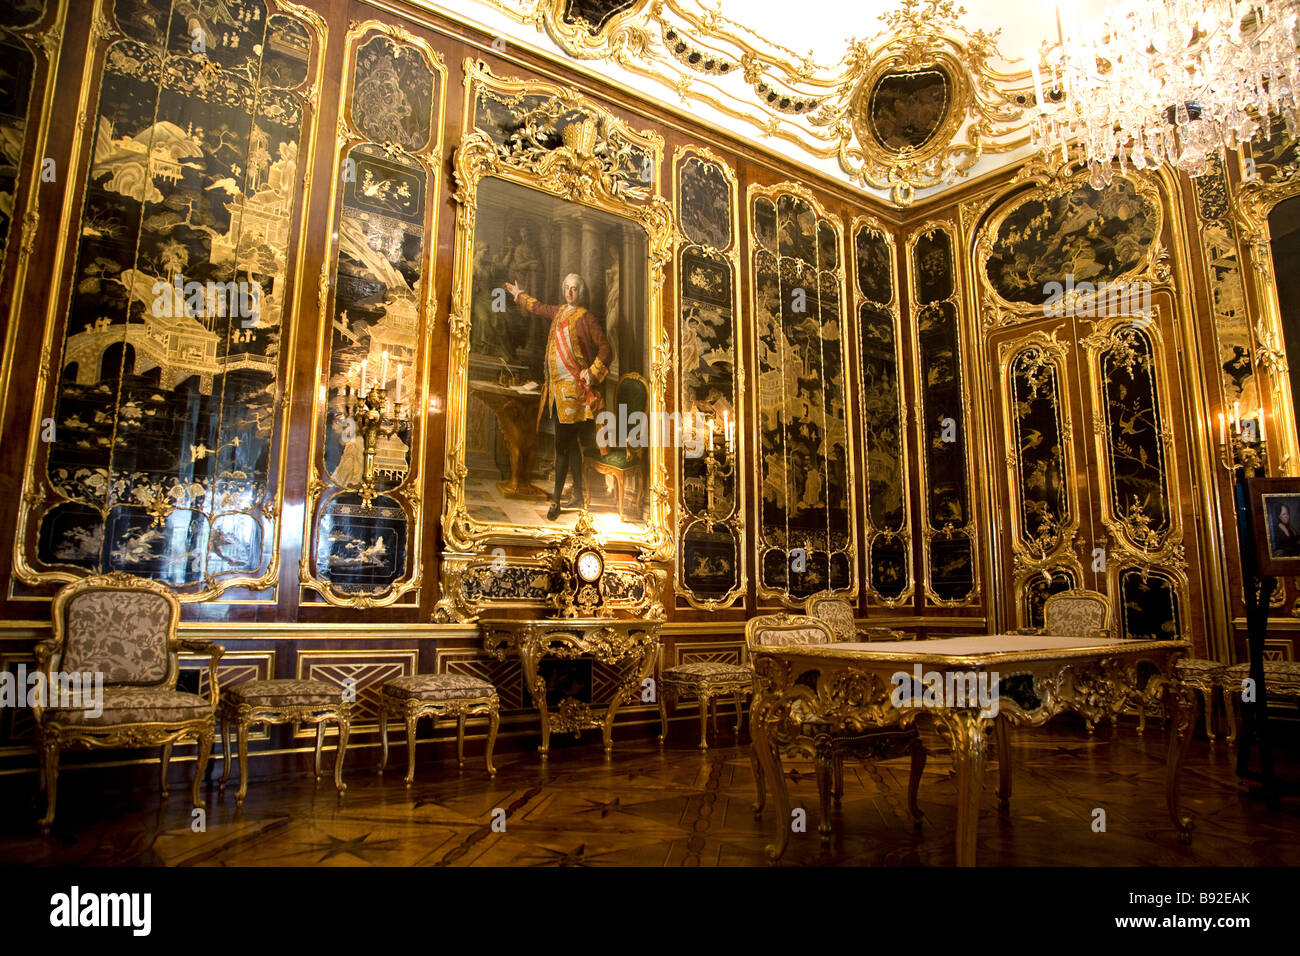 One of the 1440 sumptuously decorated rooms of Schloss Schonbrunn Vienna Austria - Stock Image